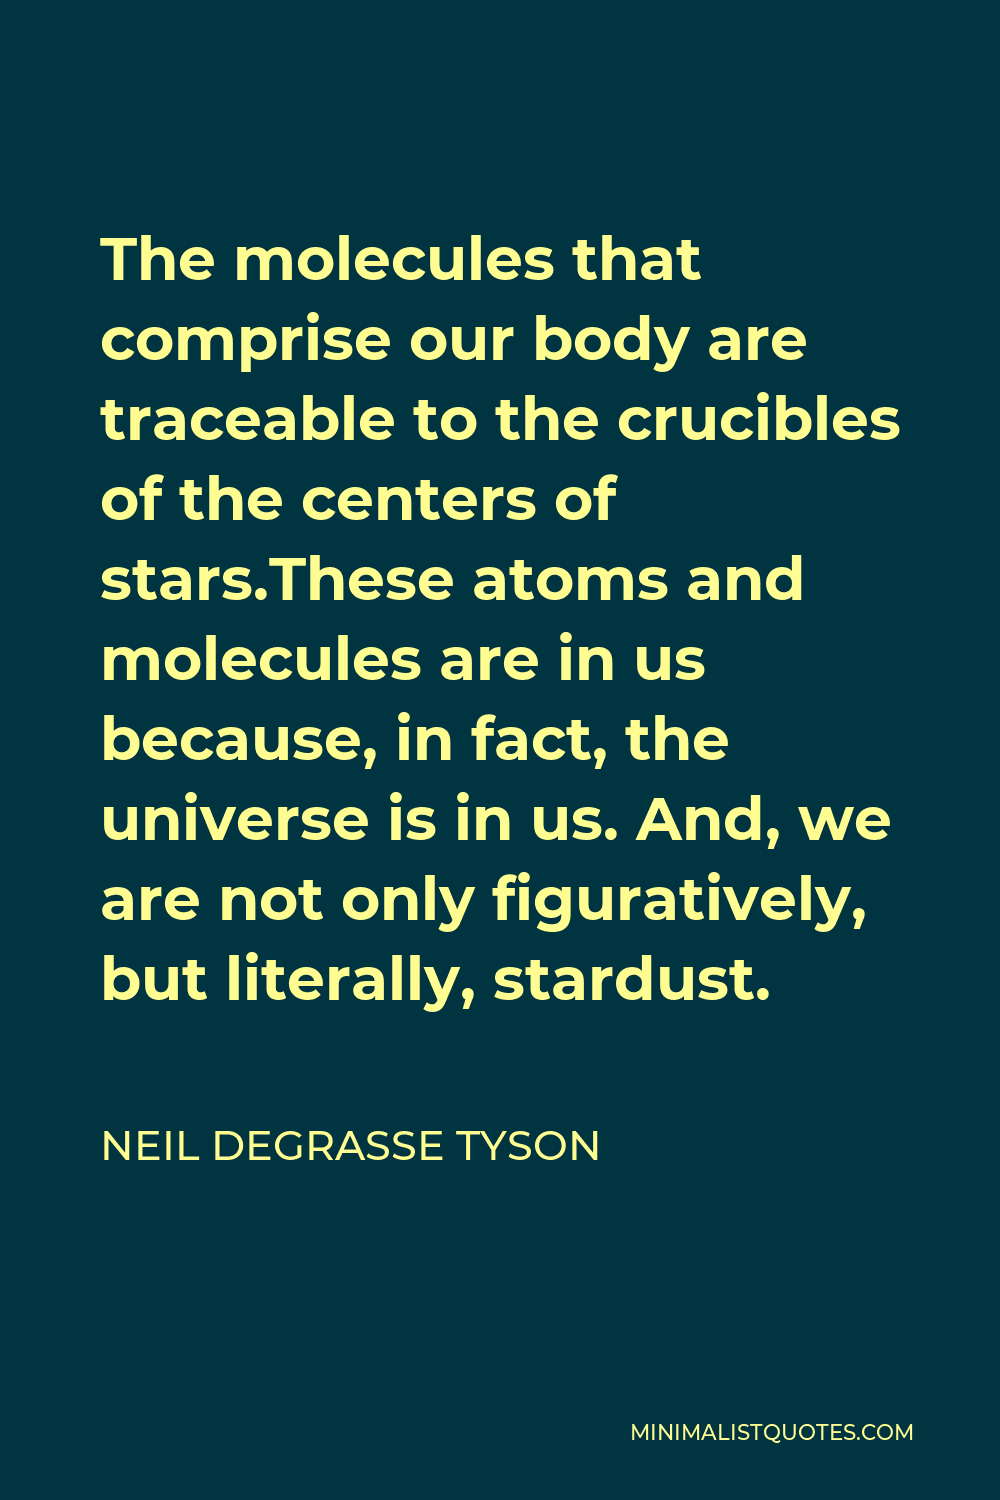 Neil deGrasse Tyson Quote - The molecules that comprise our body are traceable to the crucibles of the centers of stars.These atoms and molecules are in us because, in fact, the universe is in us. And, we are not only figuratively, but literally, stardust.